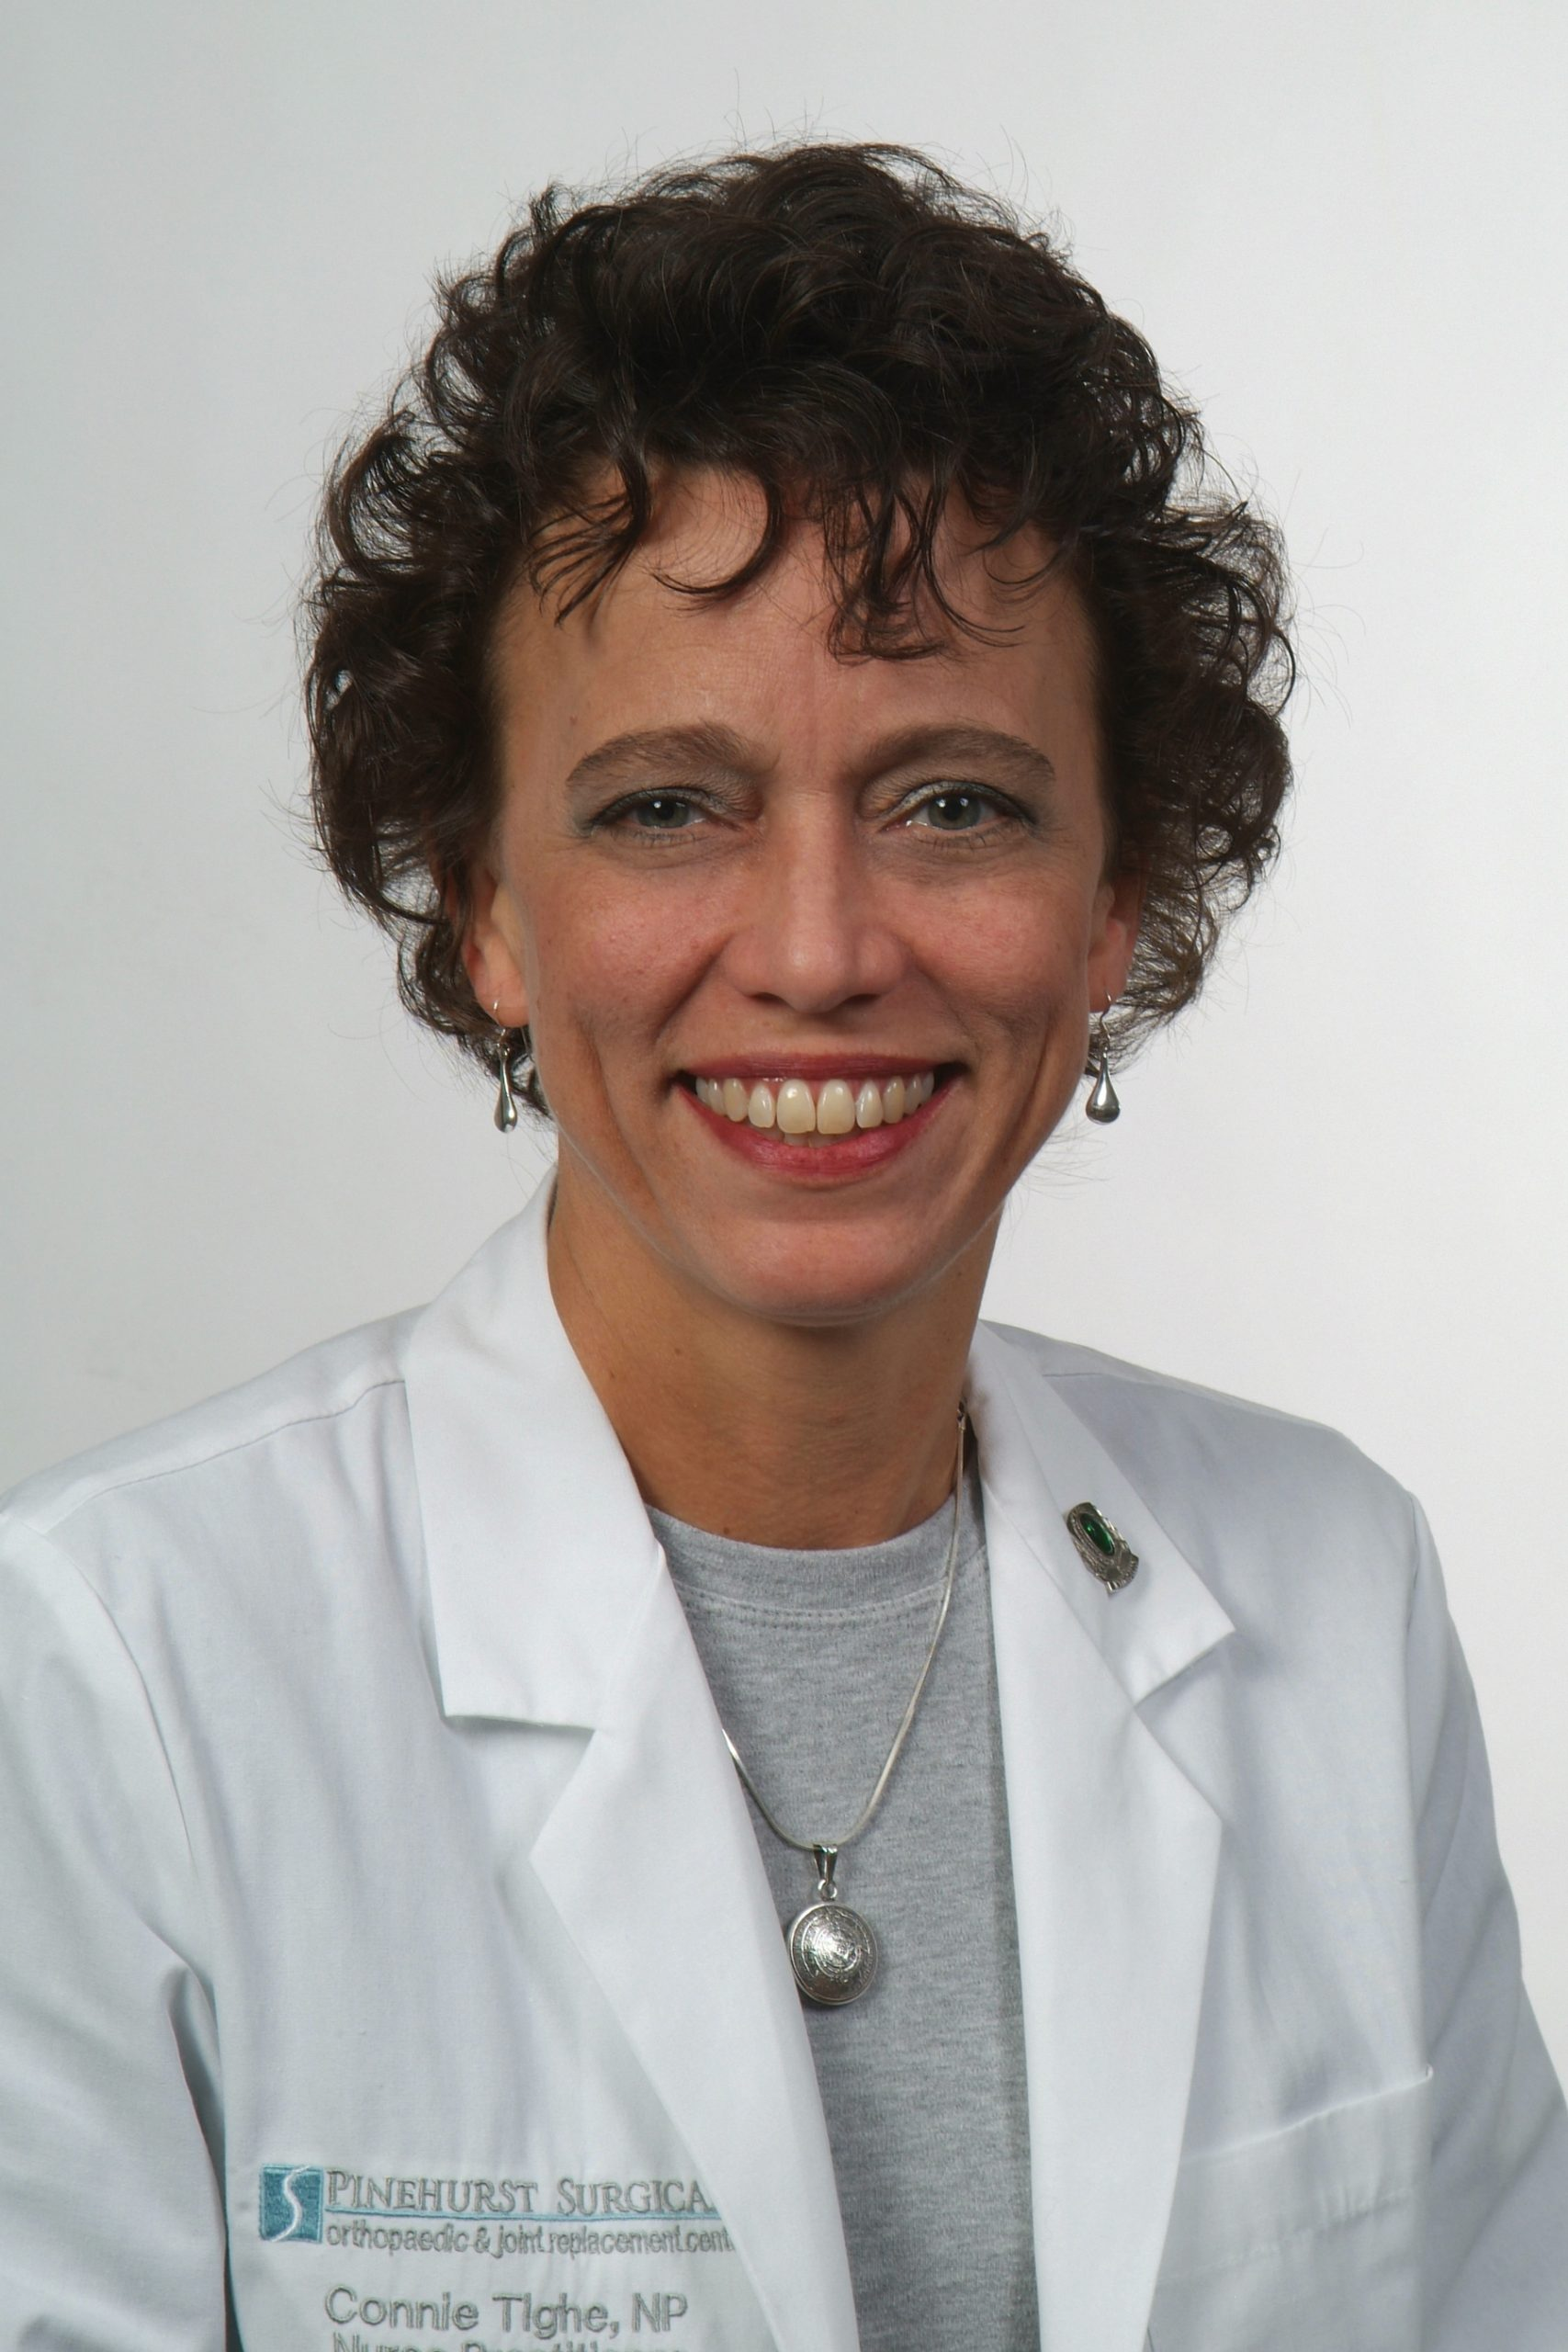 Connie Tighe Orthopaedic Surgery